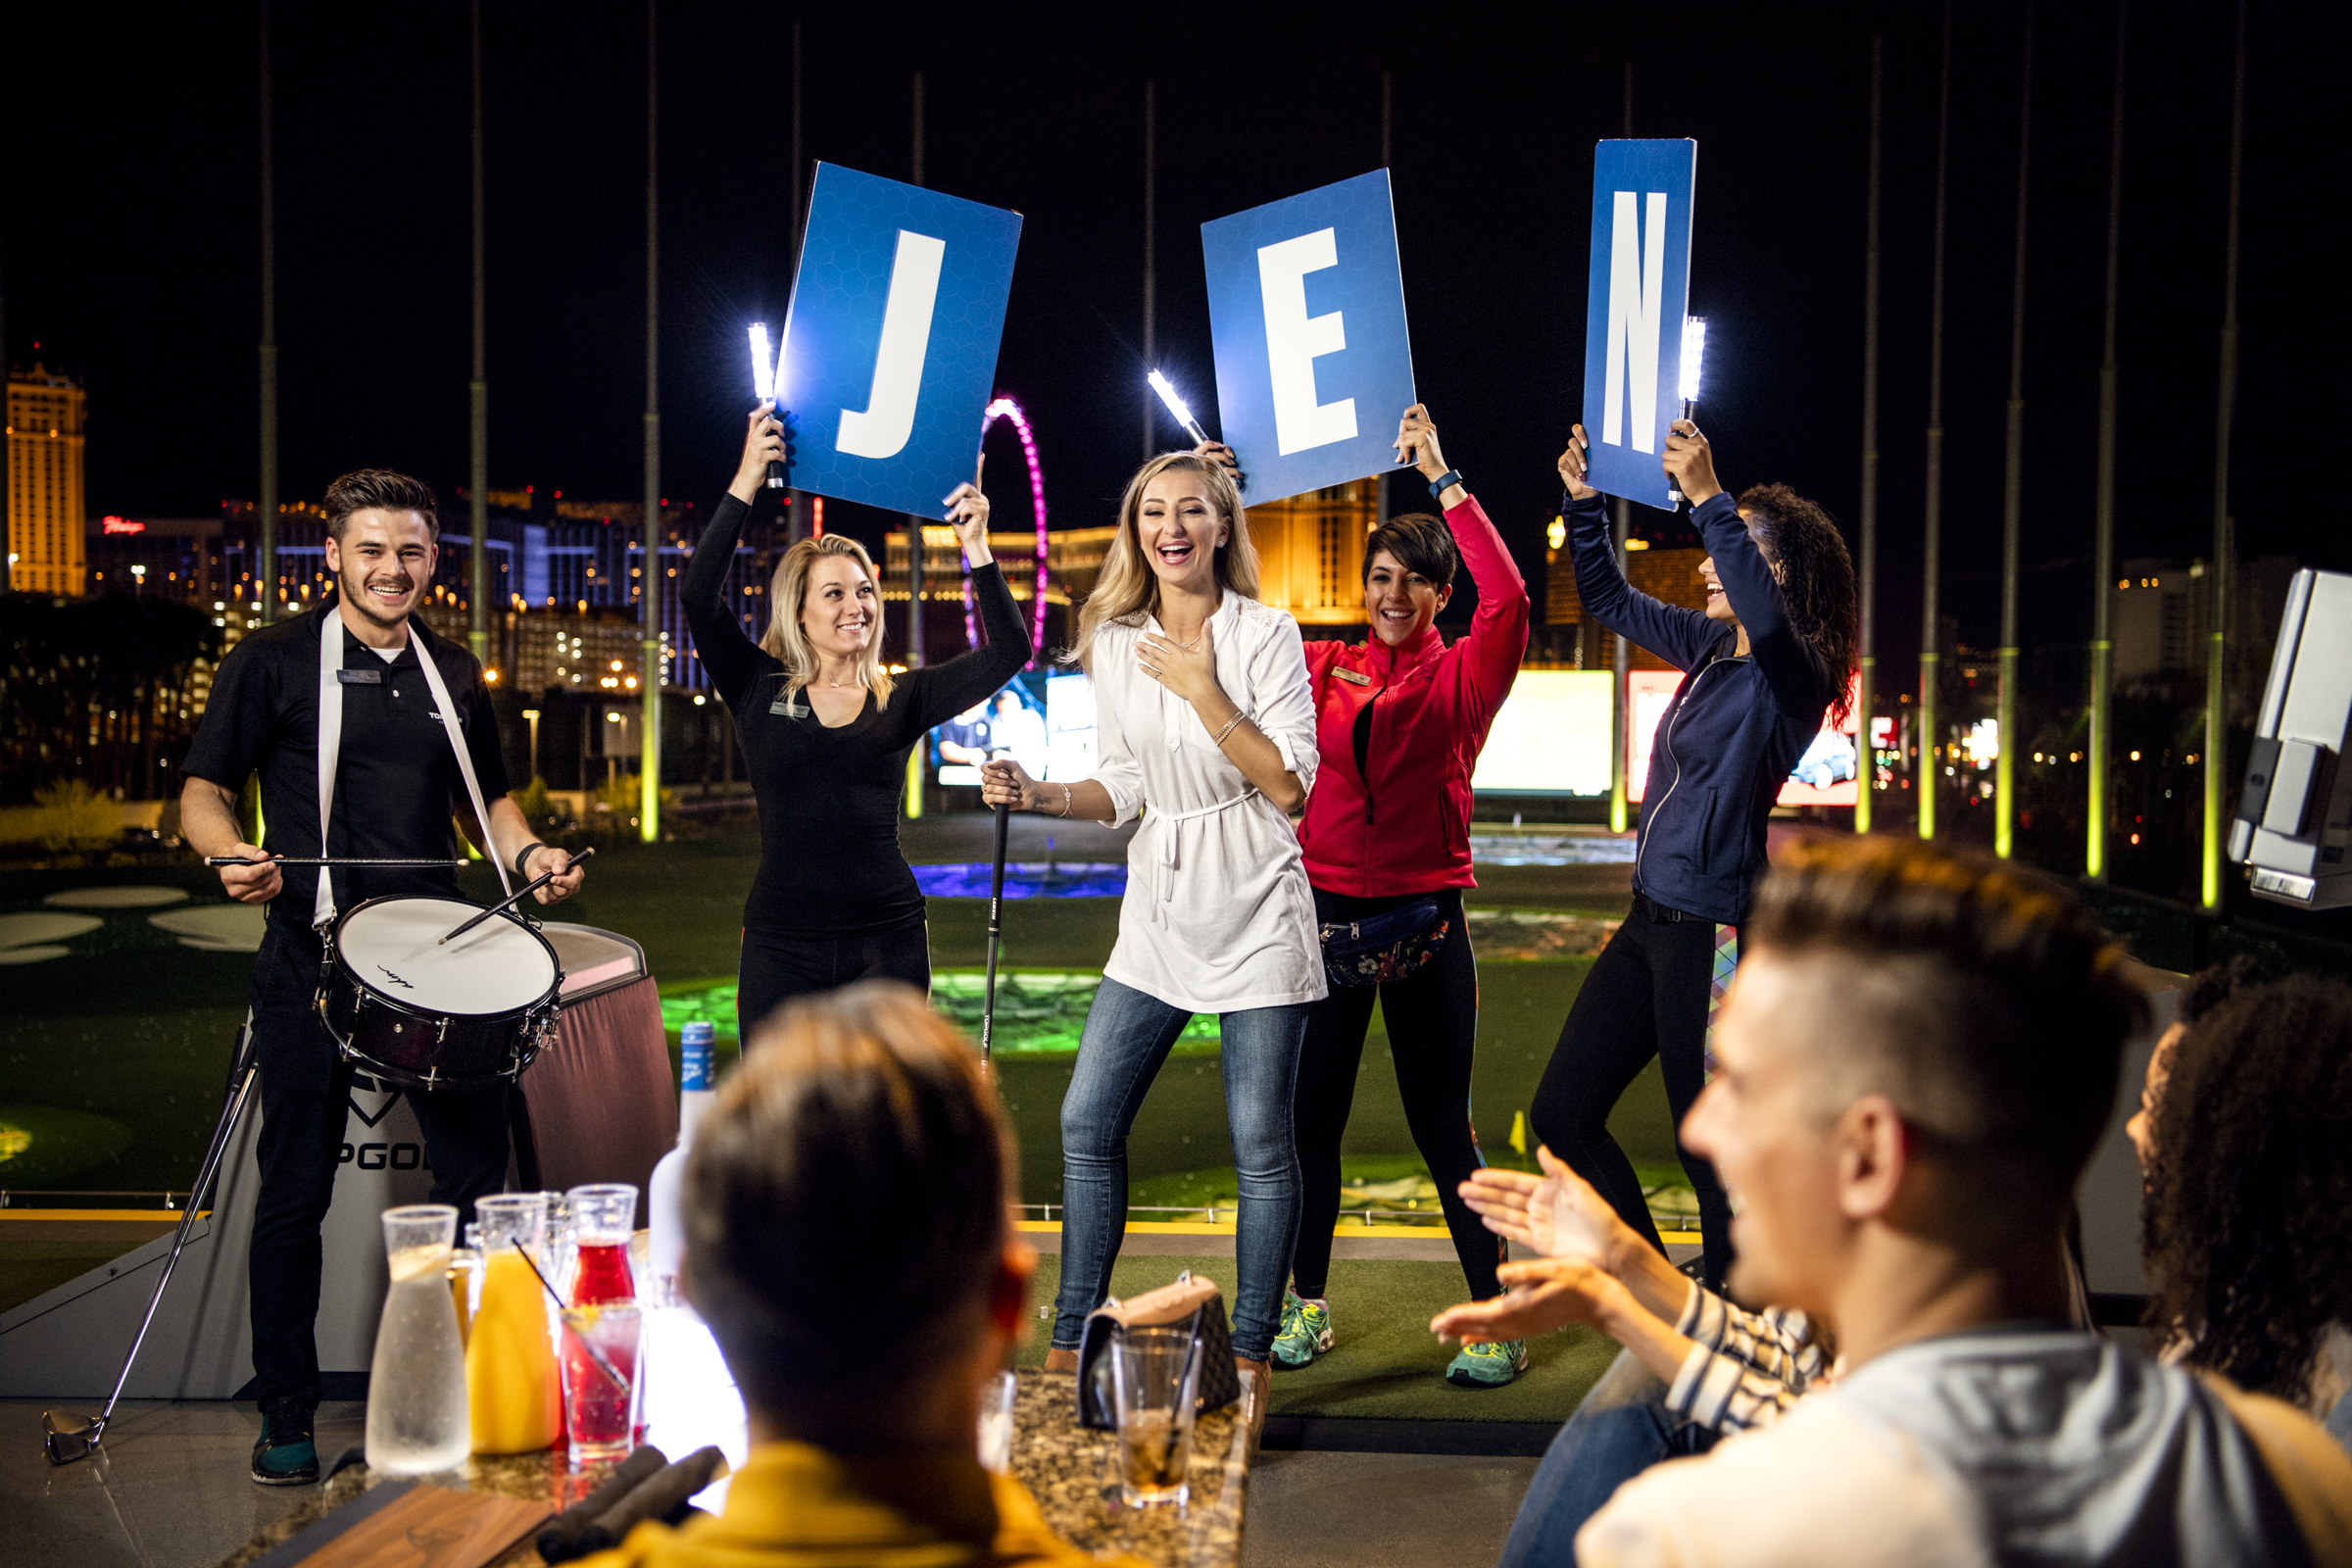 Top Golf - Vegas Lifestyle-3669-Edit.jpg